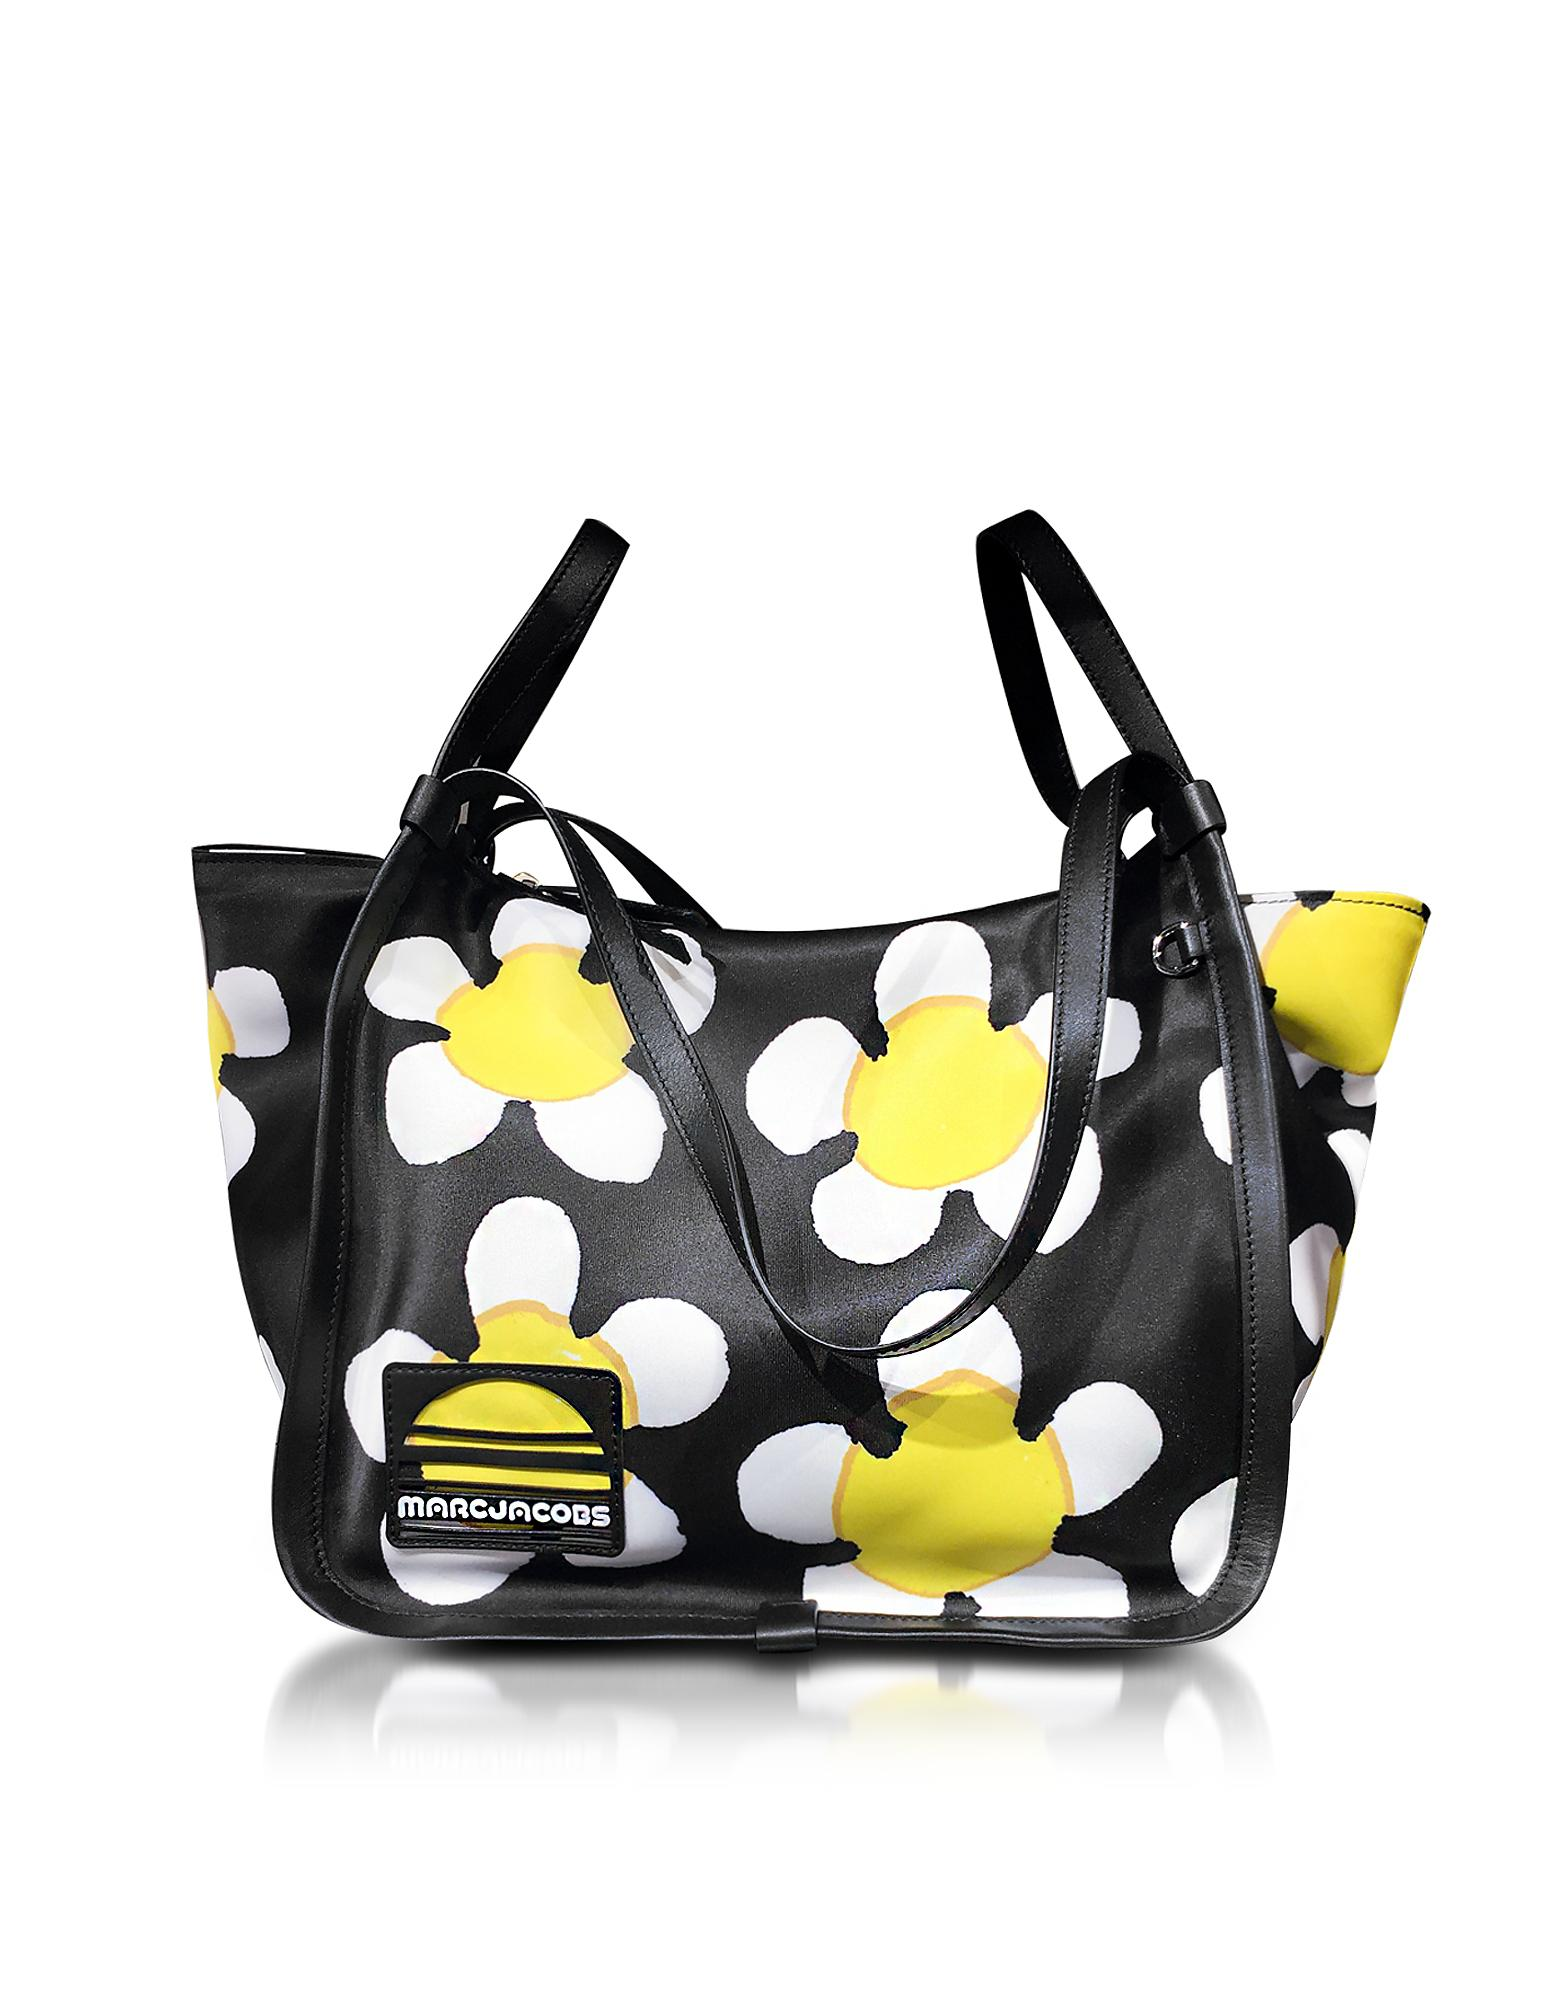 Marc Jacobs Black And Yellow Daisy Sport Tote in Yellow - Lyst 09f3b9f370c42